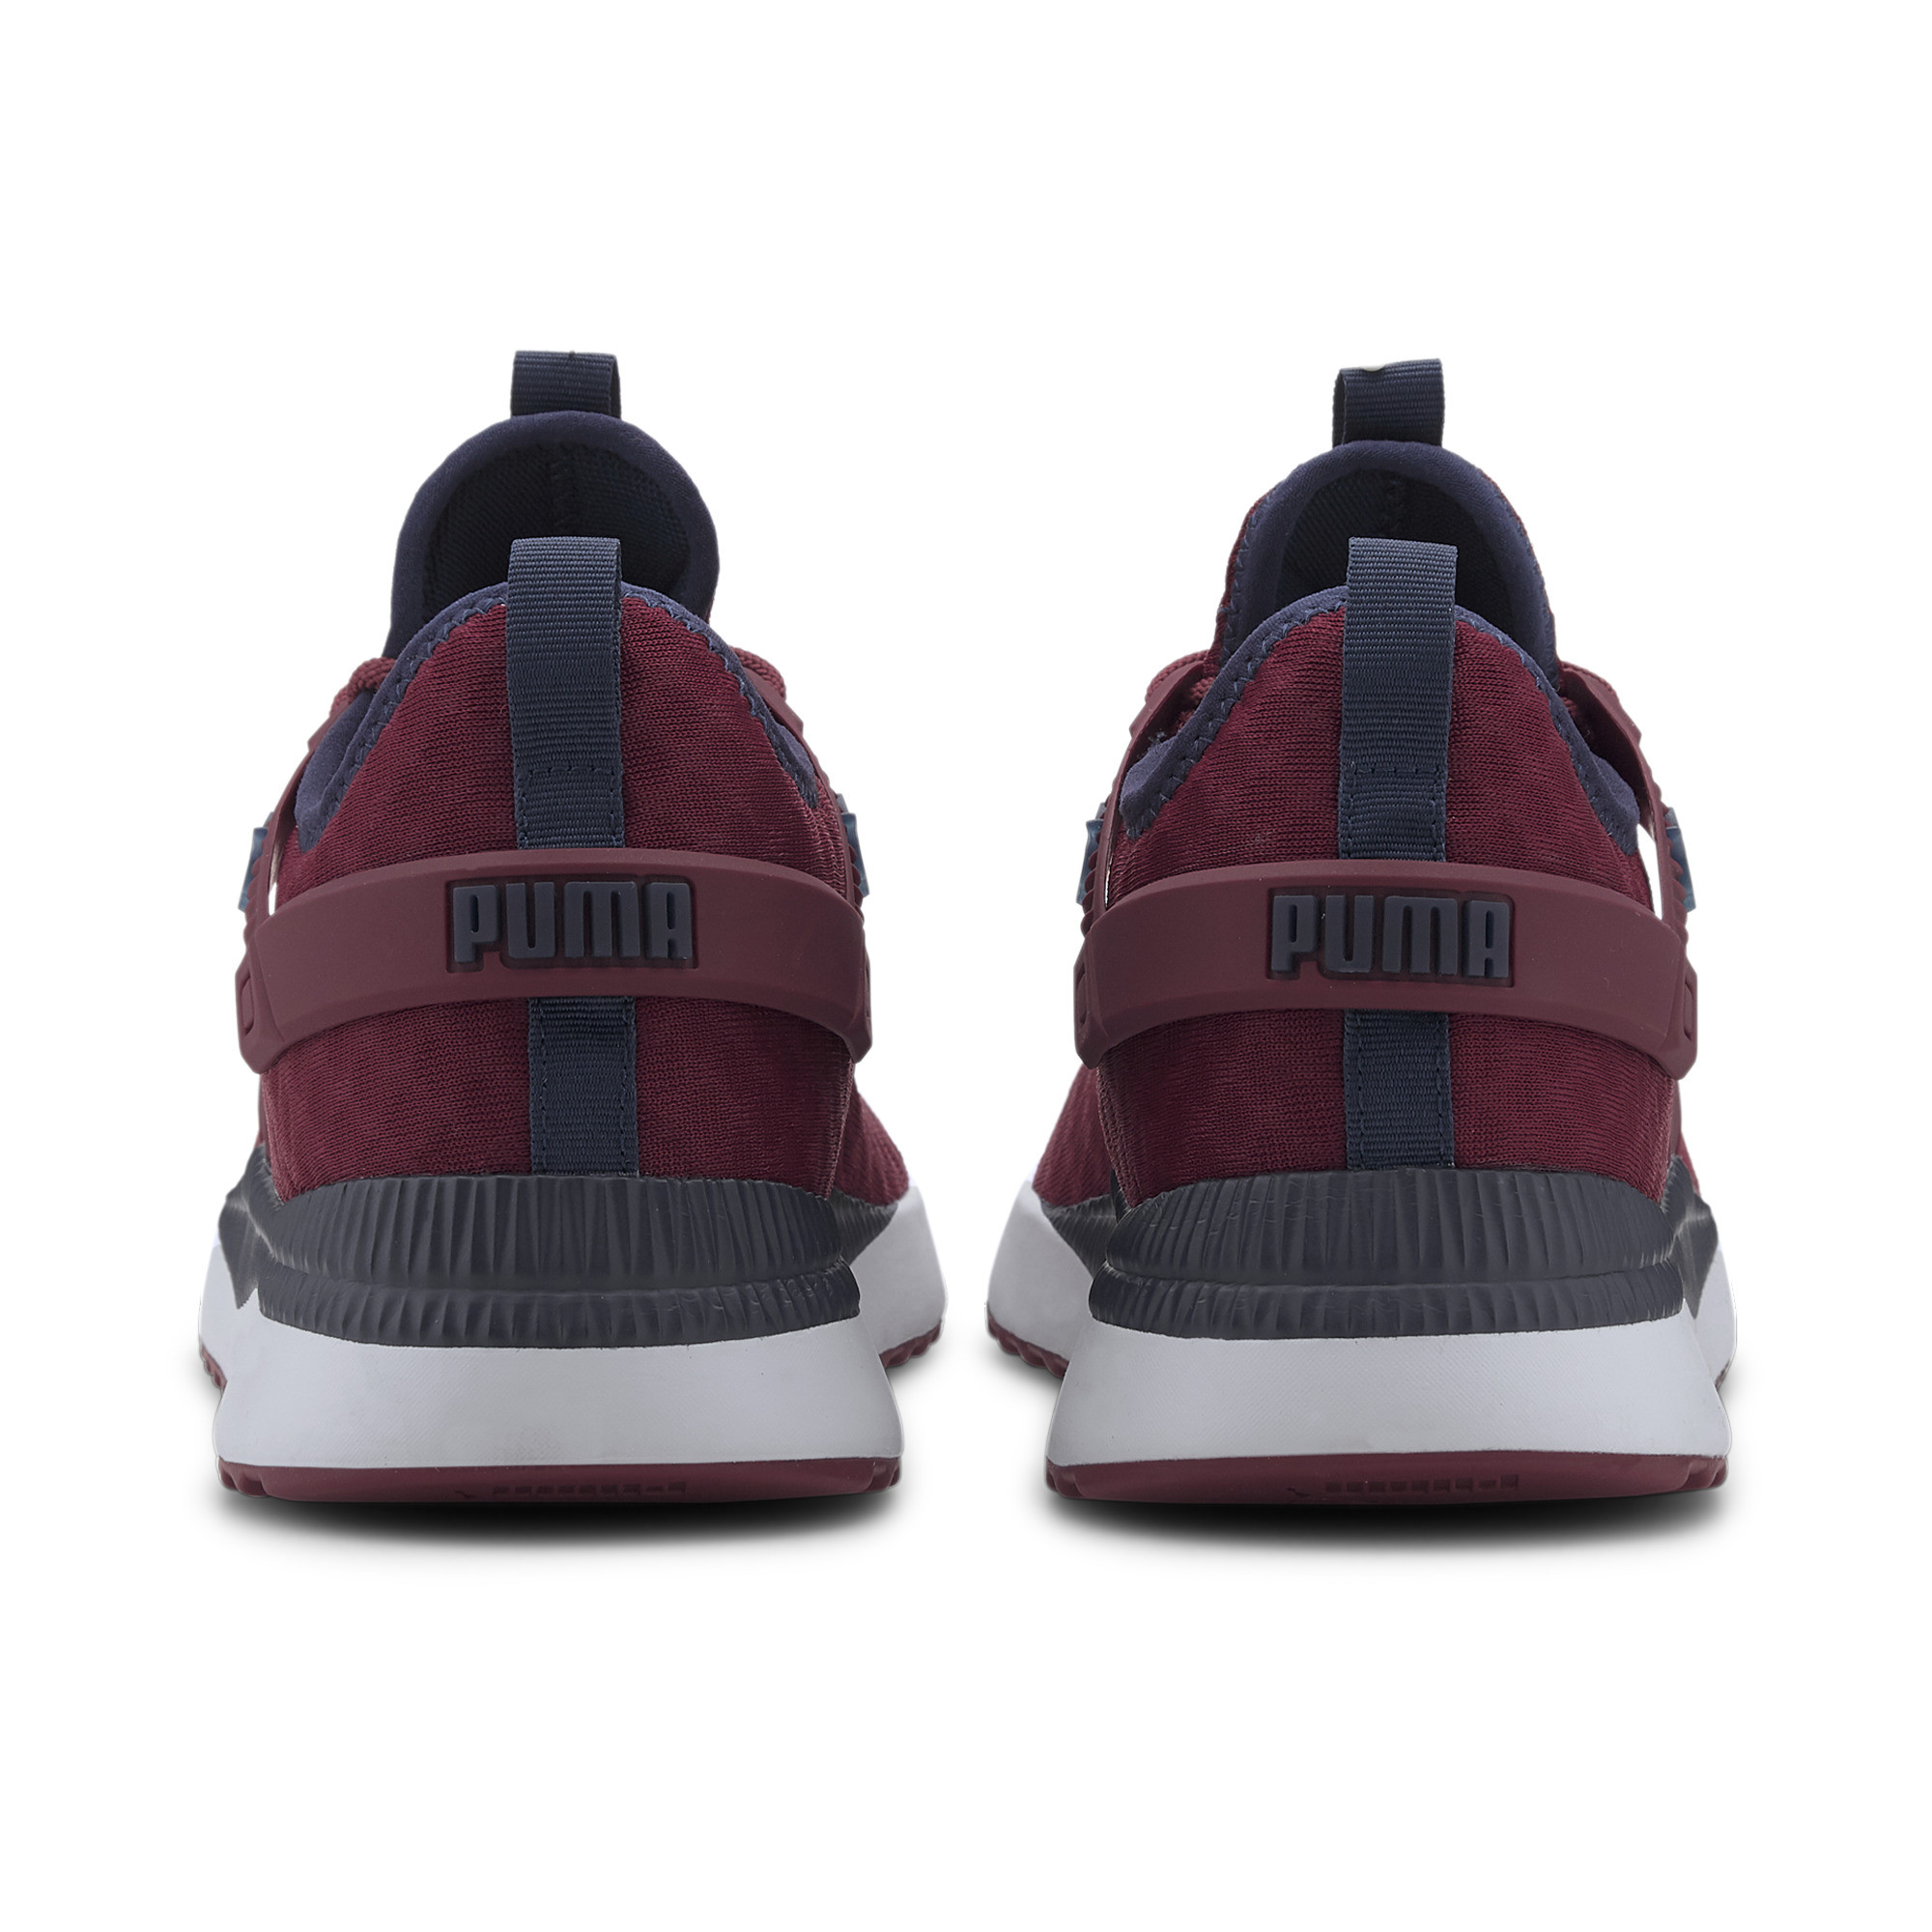 PUMA-Men-039-s-Pacer-Next-Excel-Core-Sneakers thumbnail 25